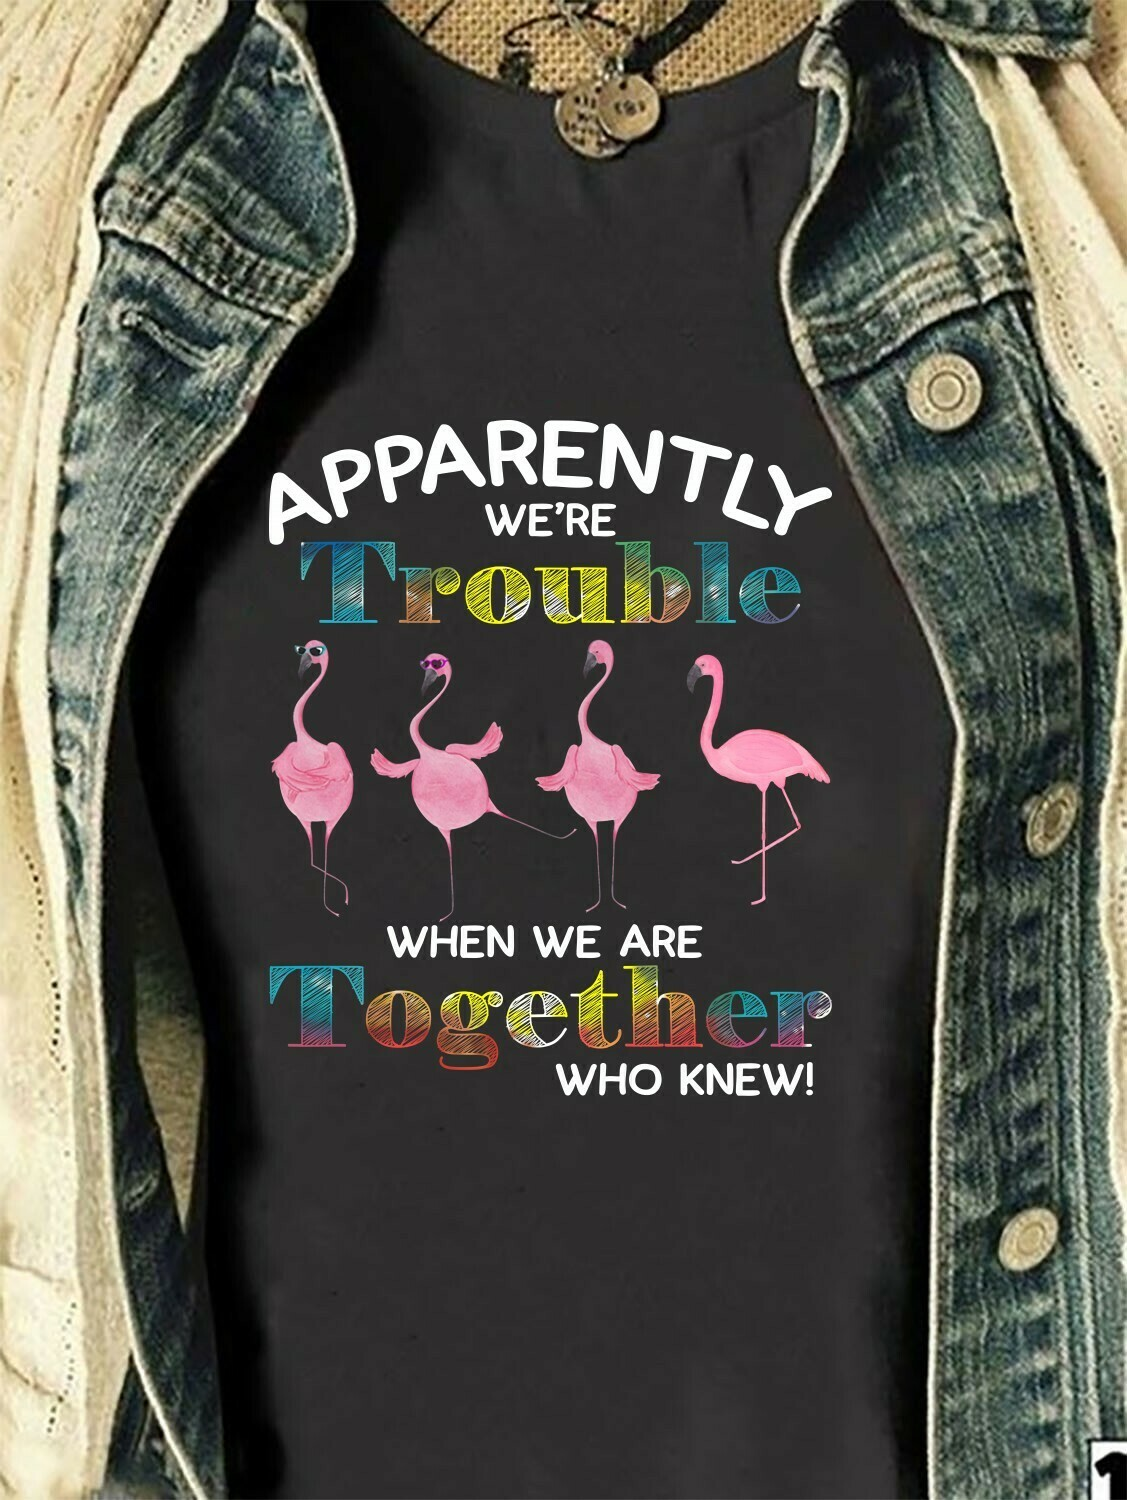 Flamingo4 Apparently We Are Trouble Together Who Knew Funny Woman Lady Flamingo Family Vacation Friends Team Party Gift T-Shirt Long Sleeve Sweatshirt Hoodie Jolly Family Gifts